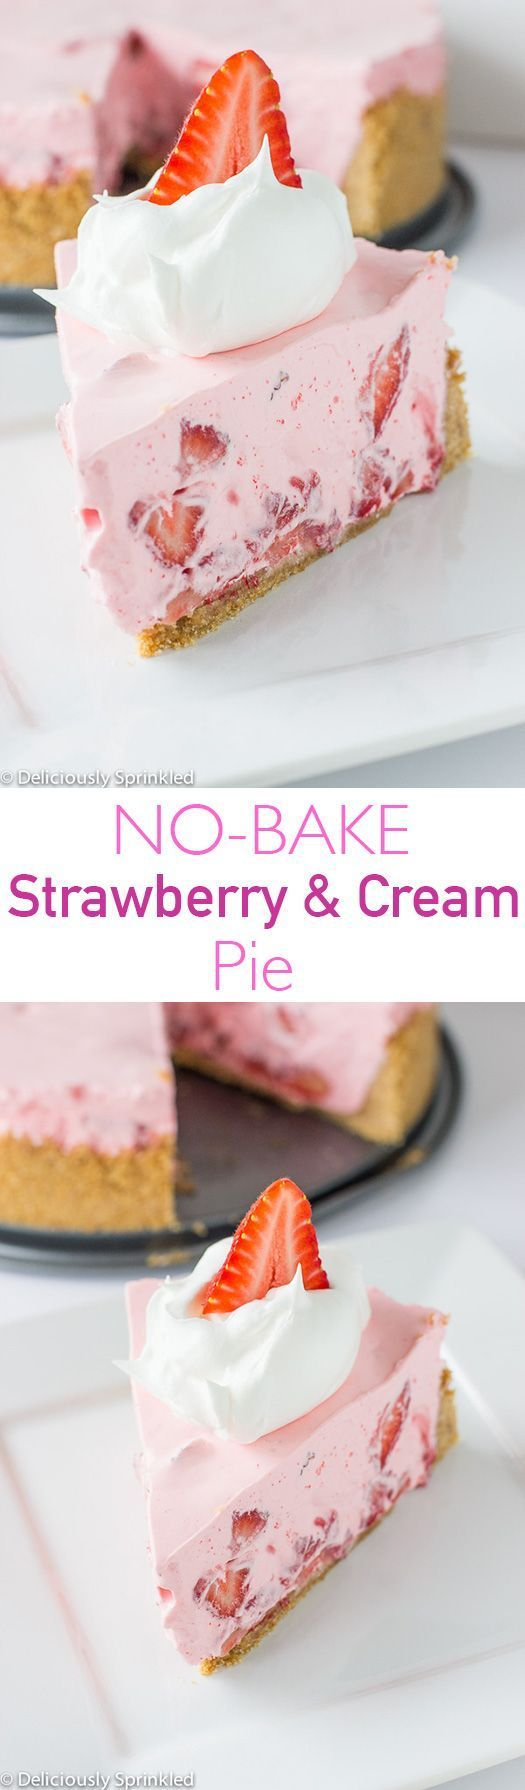 No-Bake Strawberry & Cream Pie Recipe plus 24 more of the most pinned no-bake dessert recipes